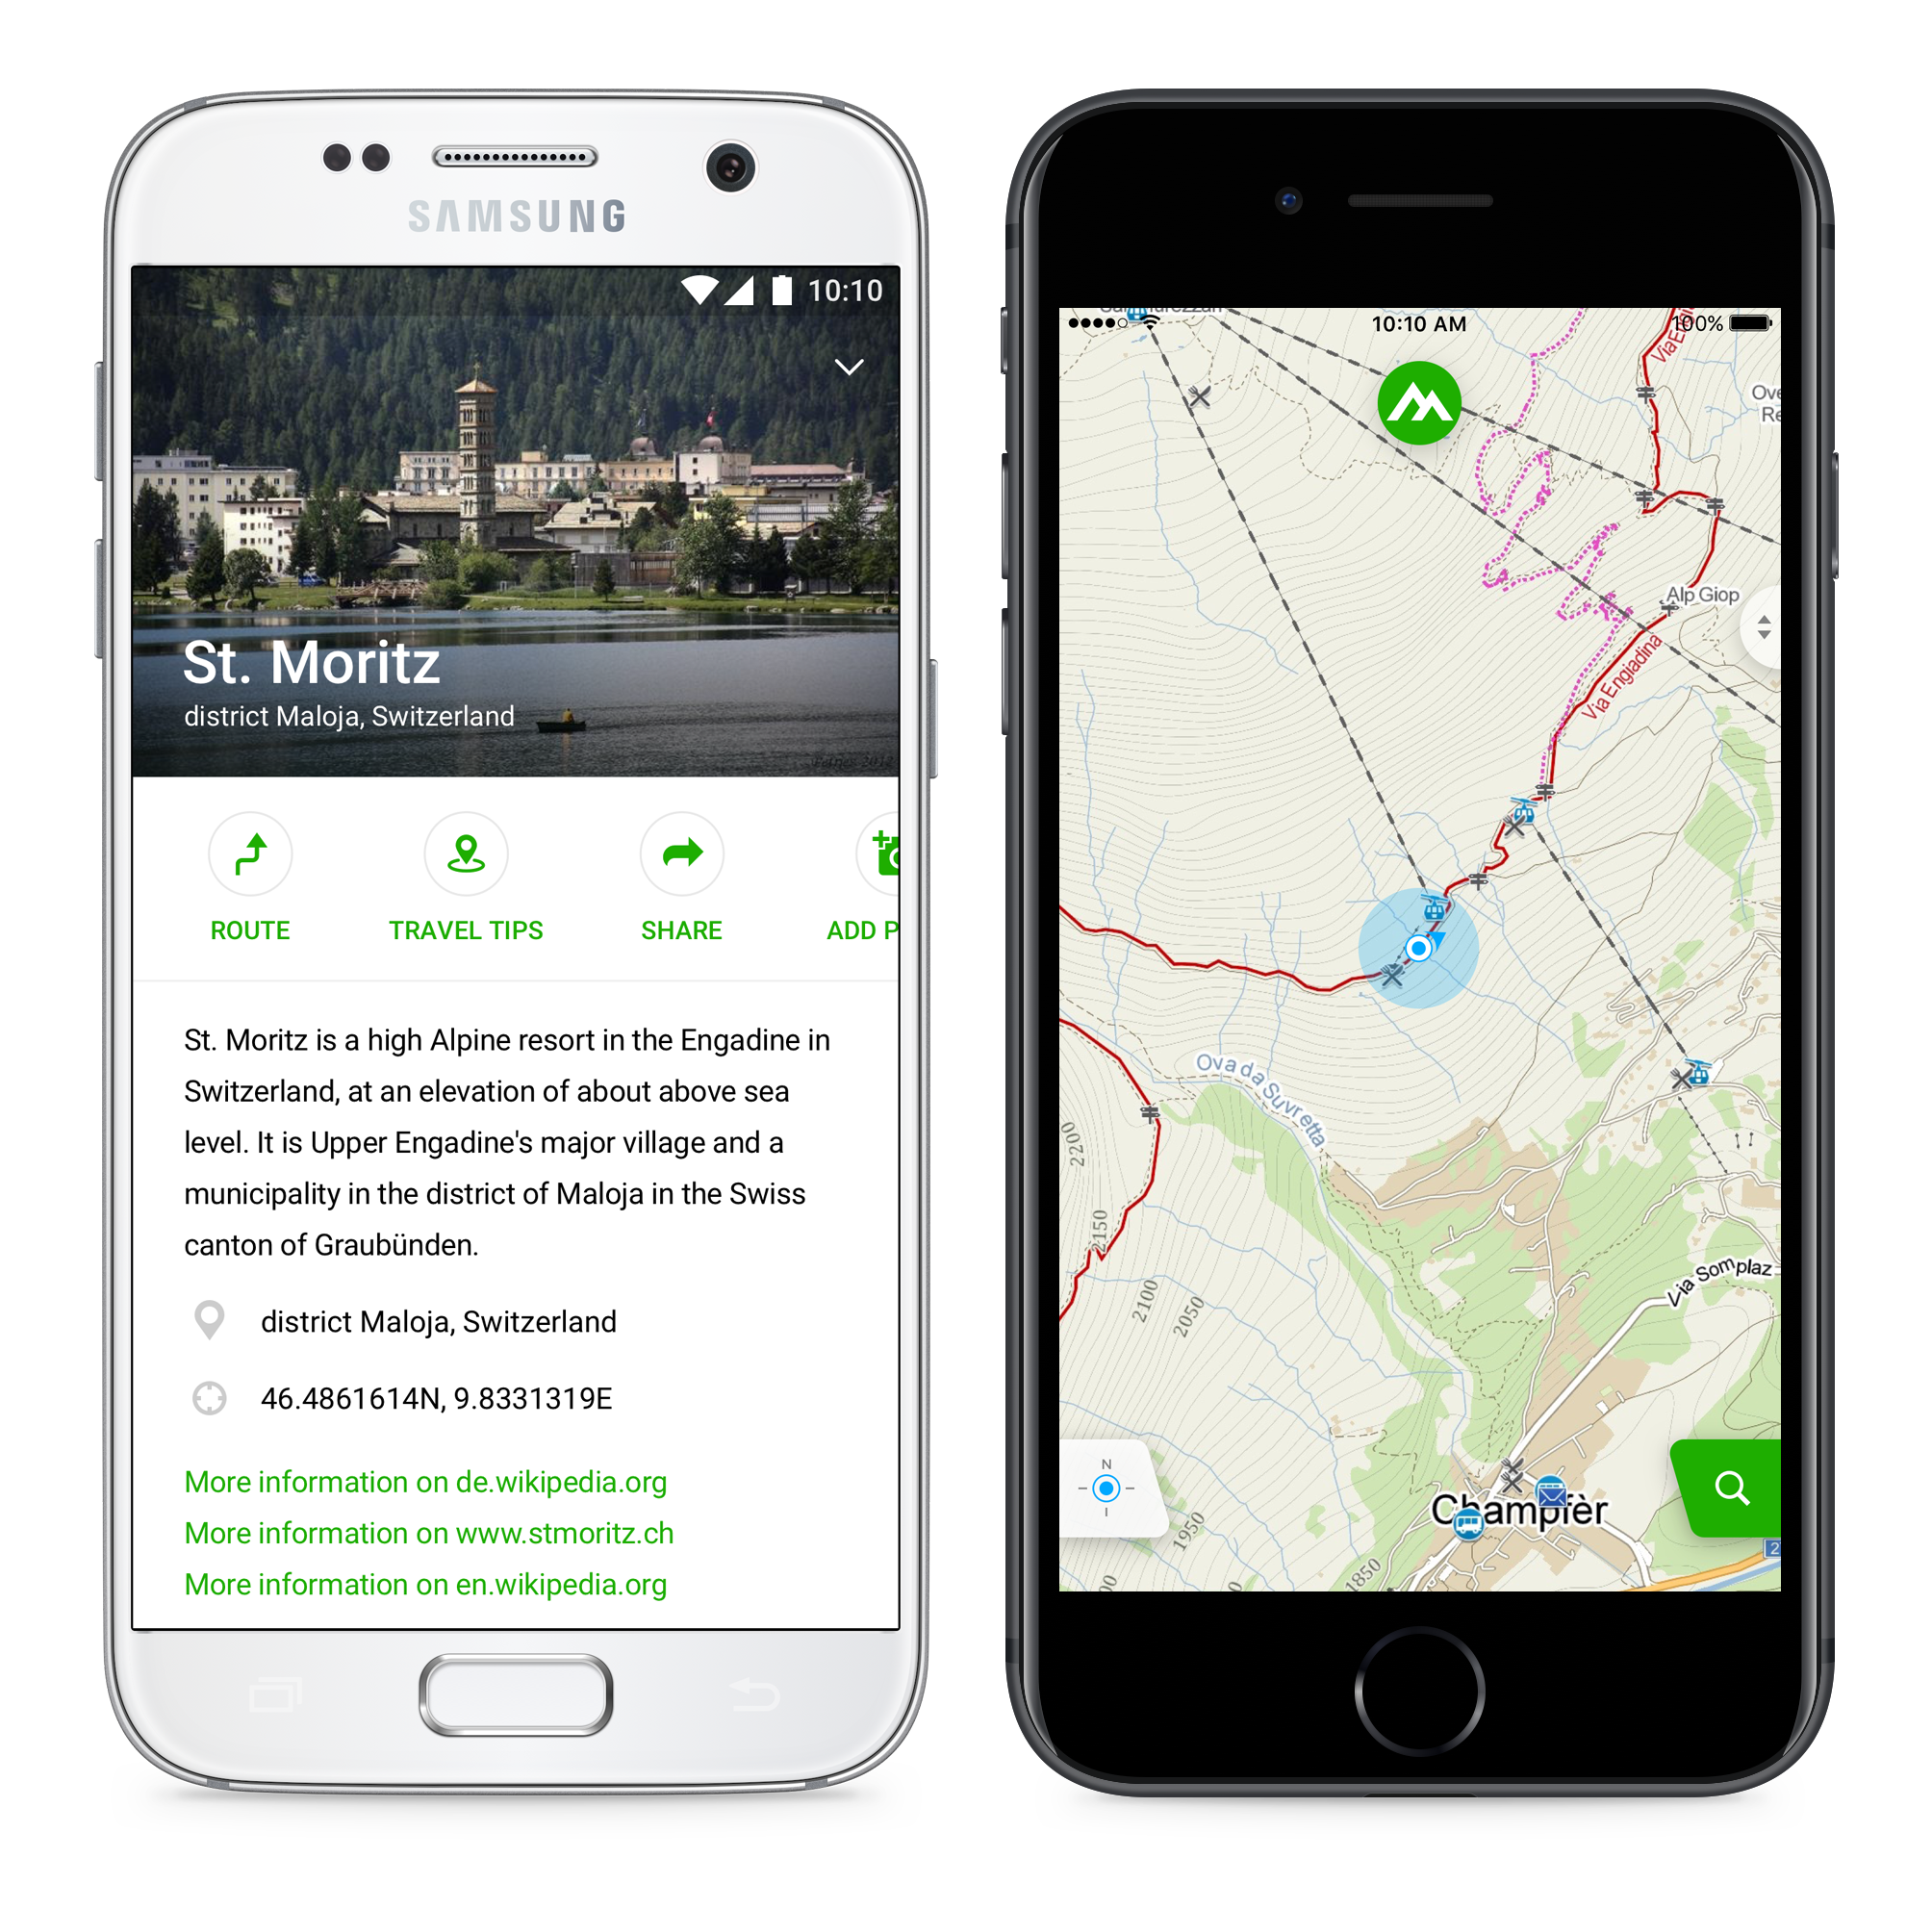 Windy Maps Introduces the Most Detailed Offline Tourist Maps for